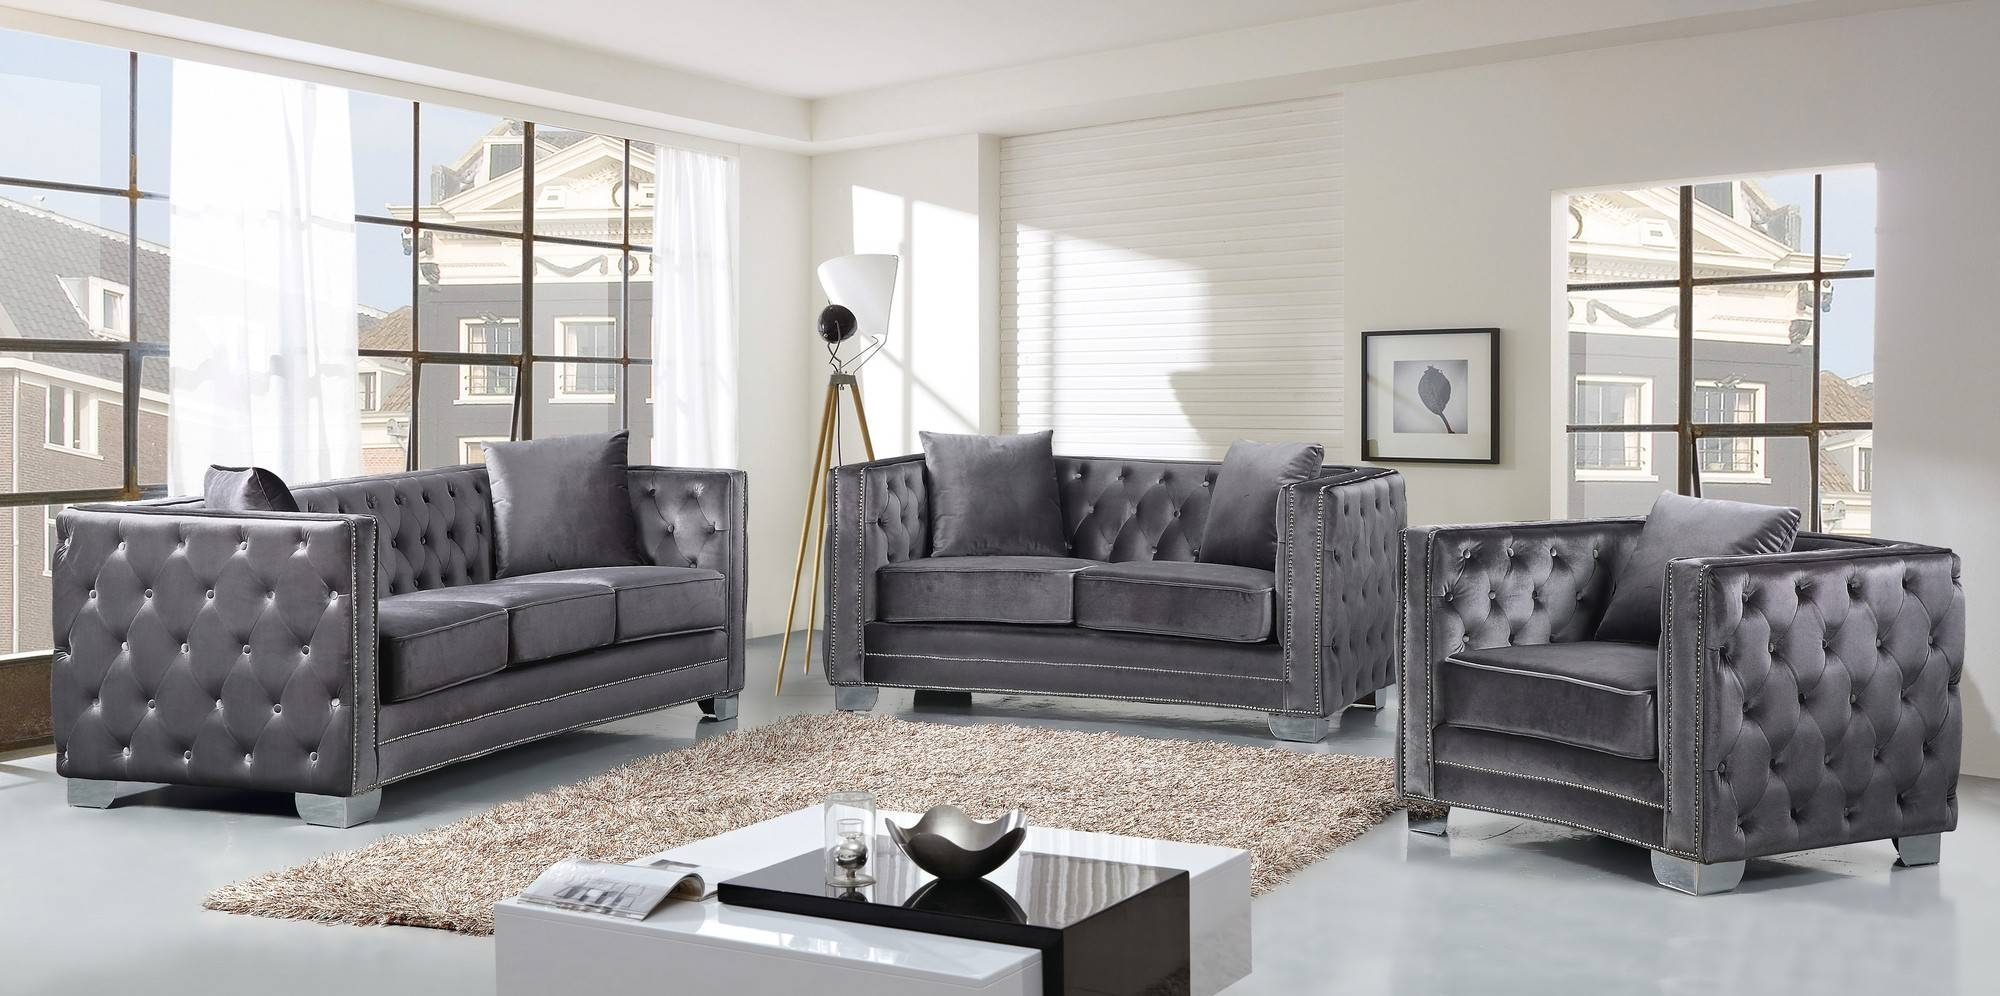 Furniture: Grey Velvet Sofa | Grey Tufted Sofa | Tufted Sleeper Sofa in Silver Tufted Sofas (Image 6 of 15)